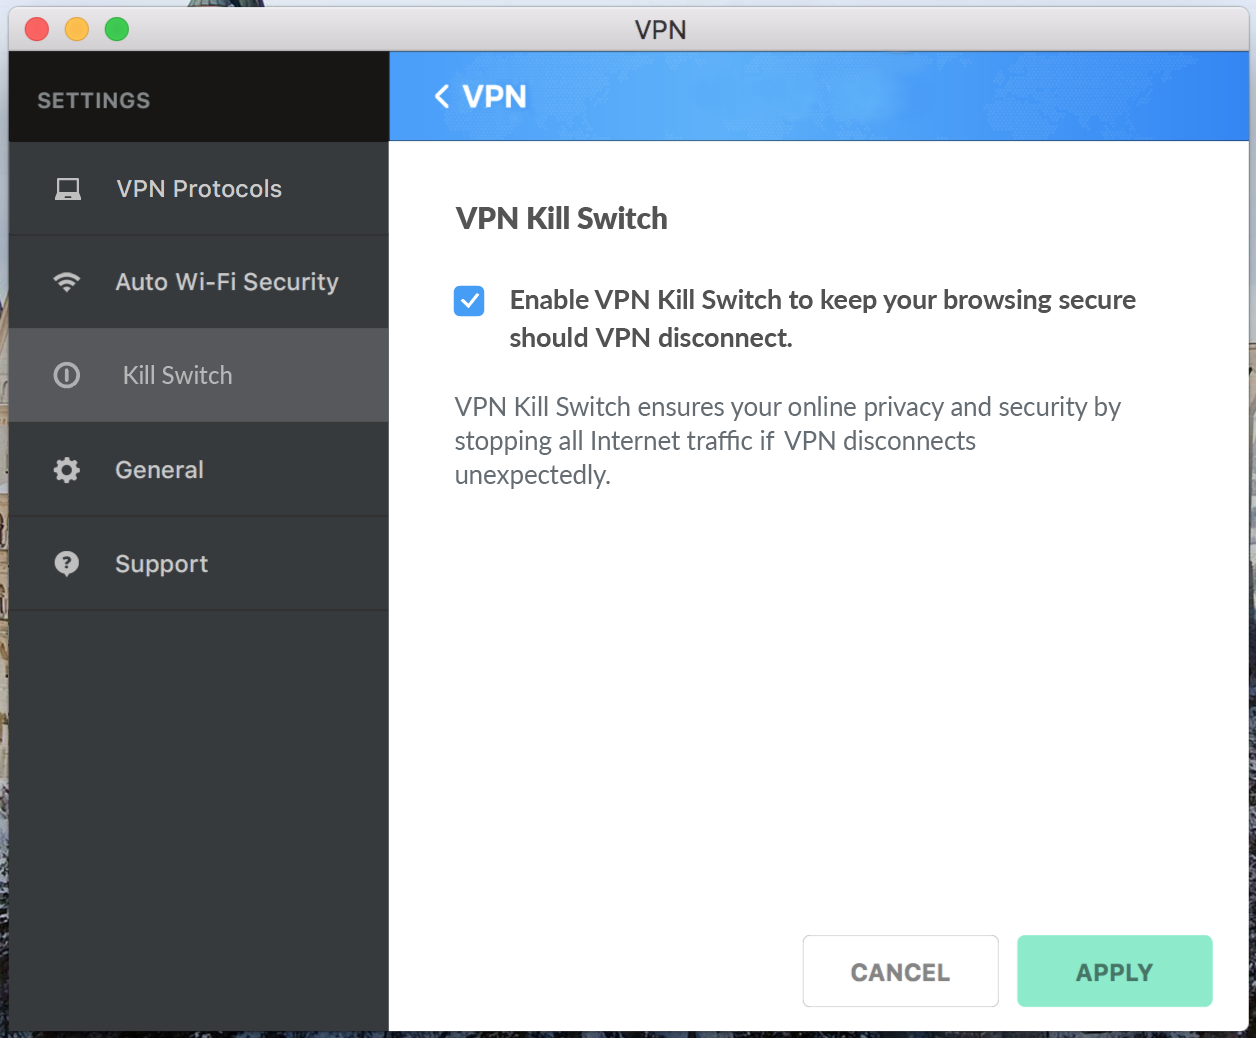 Activer le Kill Switch sur son VPN